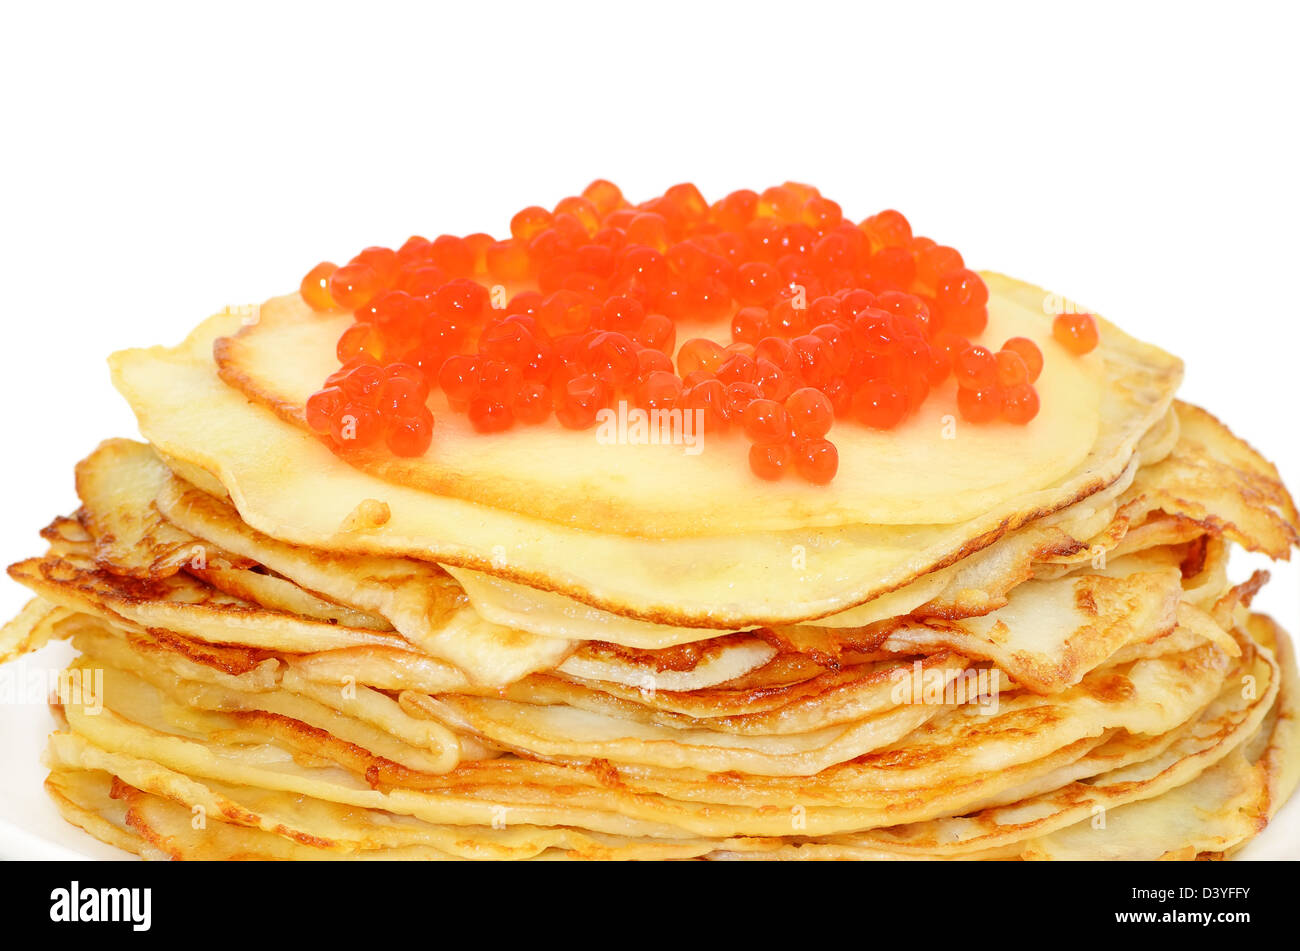 Pancakes with red caviar isolated on white background - Stock Image